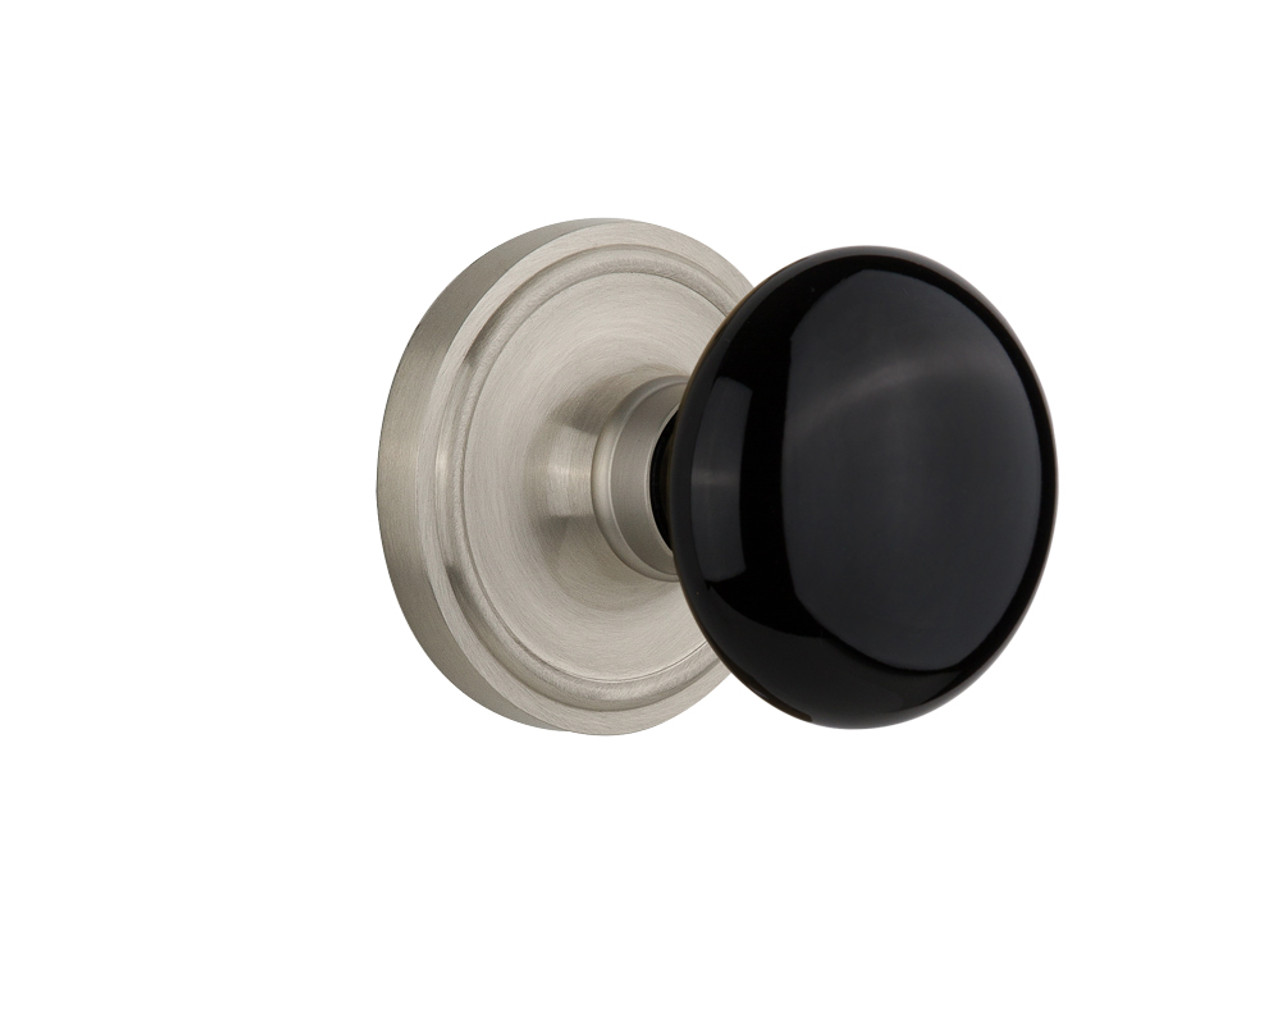 Nostalgic Warehouse Classic Plate Interior Mortise Black Porcelain Door Knob in Satin Nickel (NW-710389)